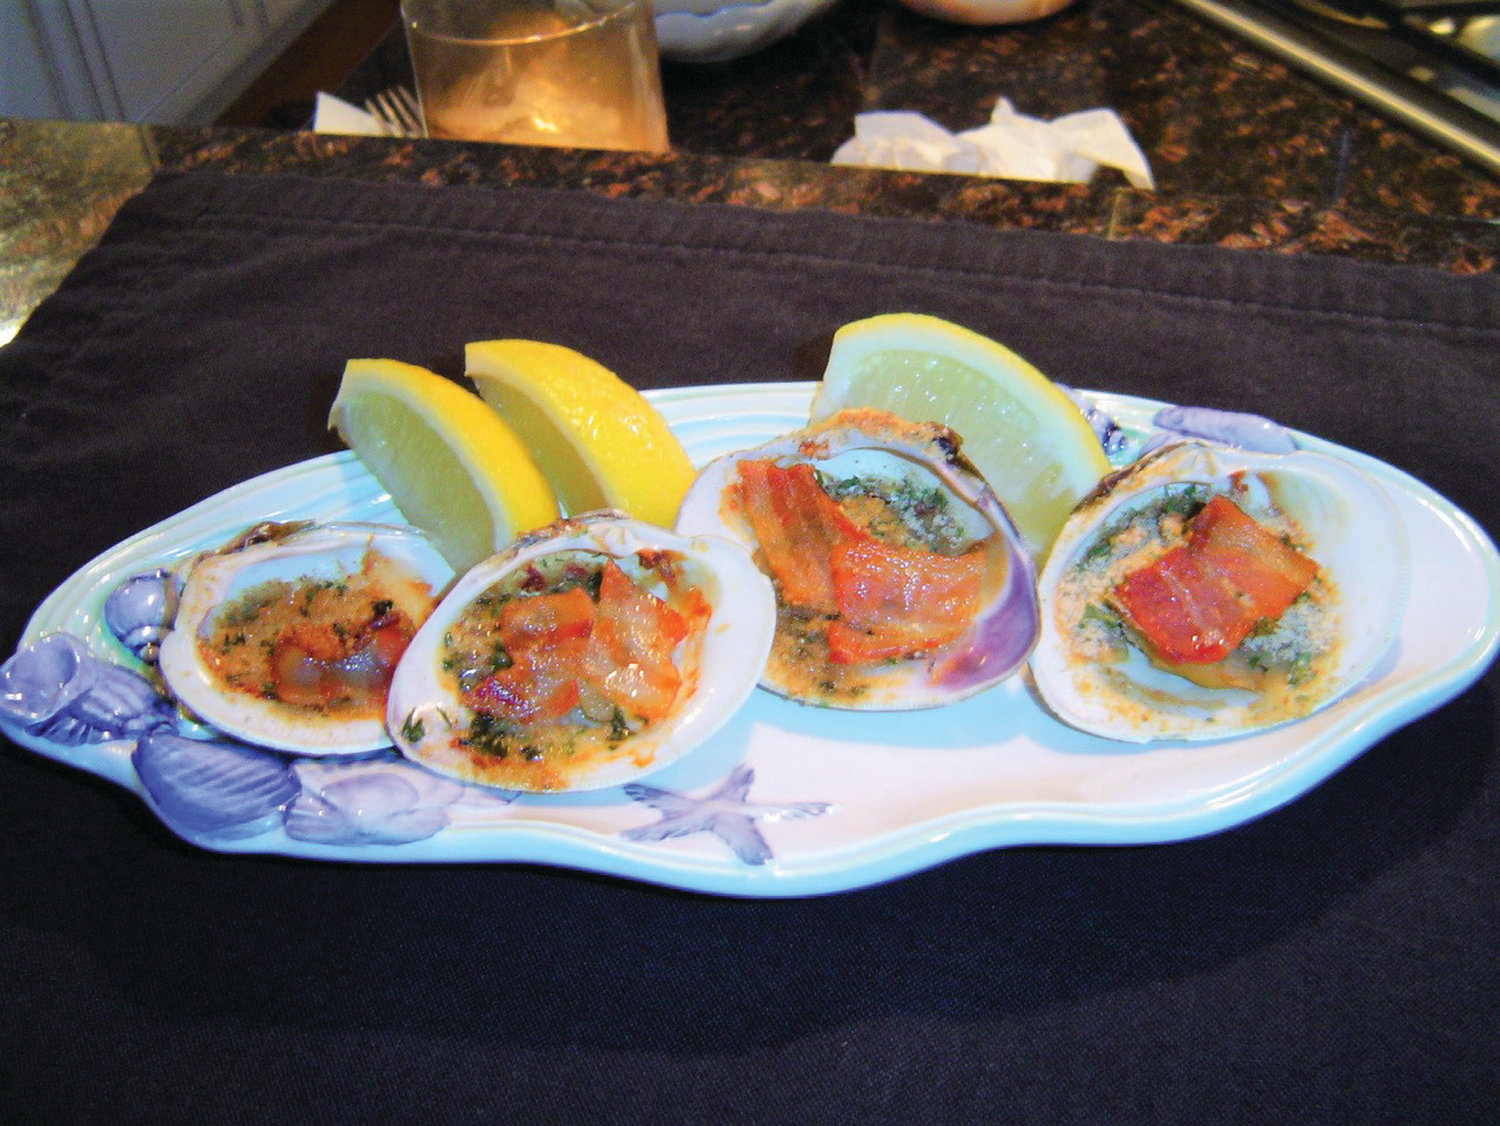 Capt. Dave's clams casino make a great holiday hos d'oeuvre.